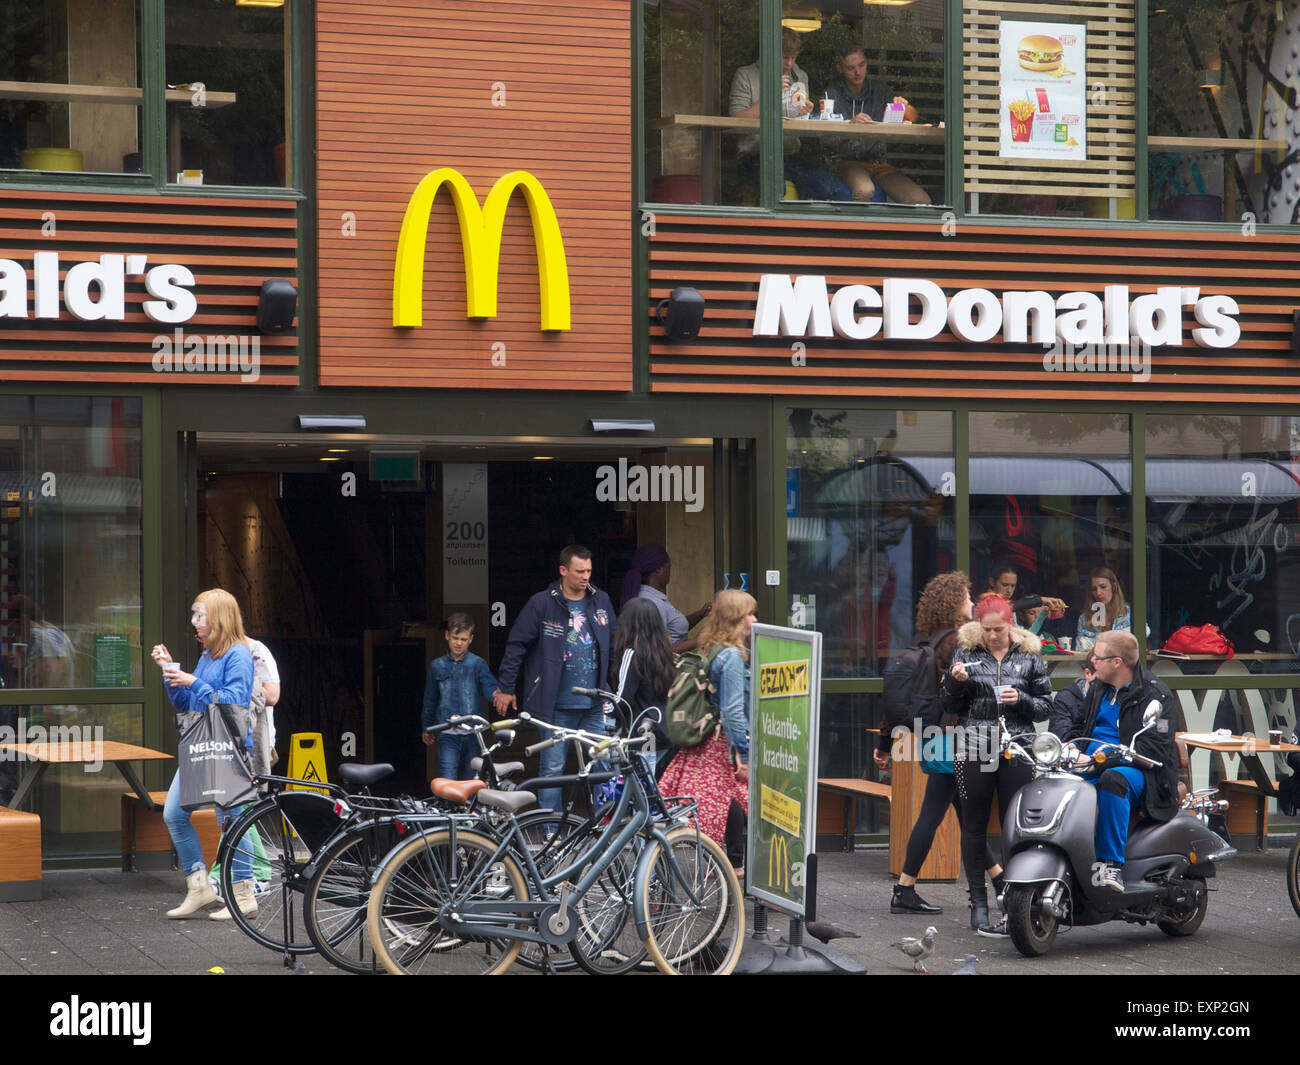 Mc Donalds fast food restaurant Breda city centre the Netherlands with many people - Stock Image